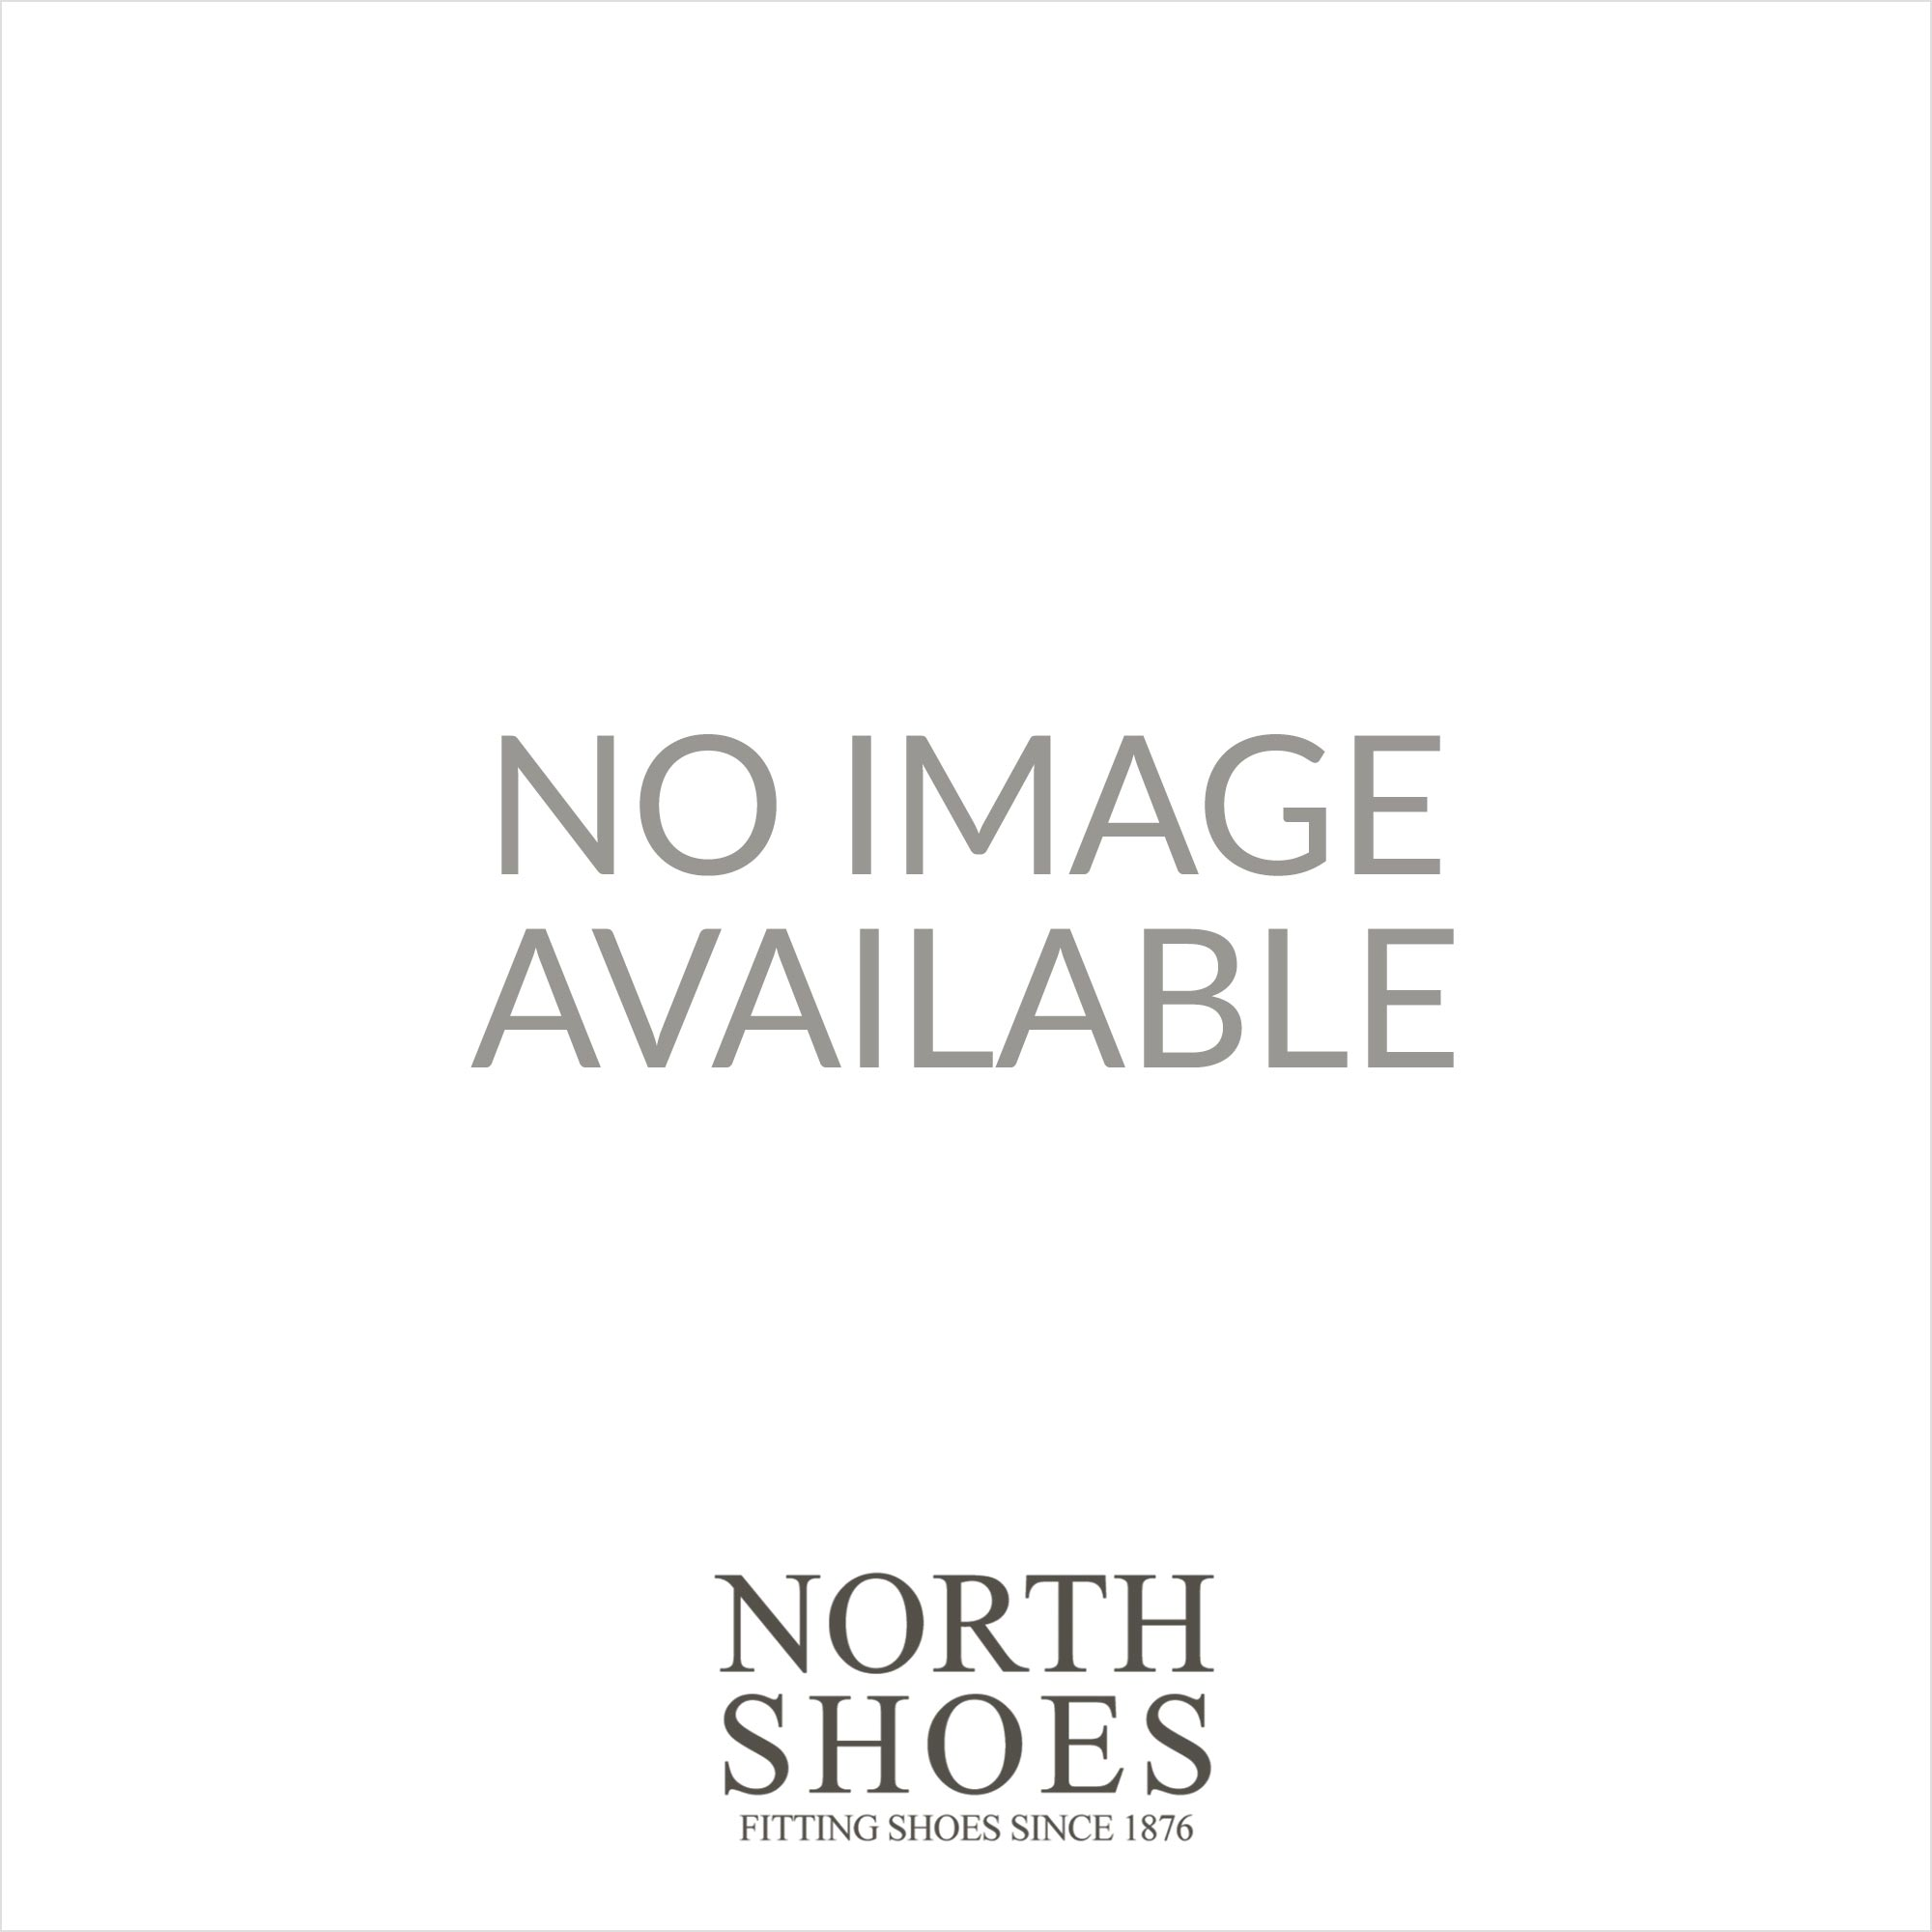 5fc5e6d76ab Clarks Un Haven Cove White Leather Womens T Bar Shoe - Clarks from North  Shoes UK